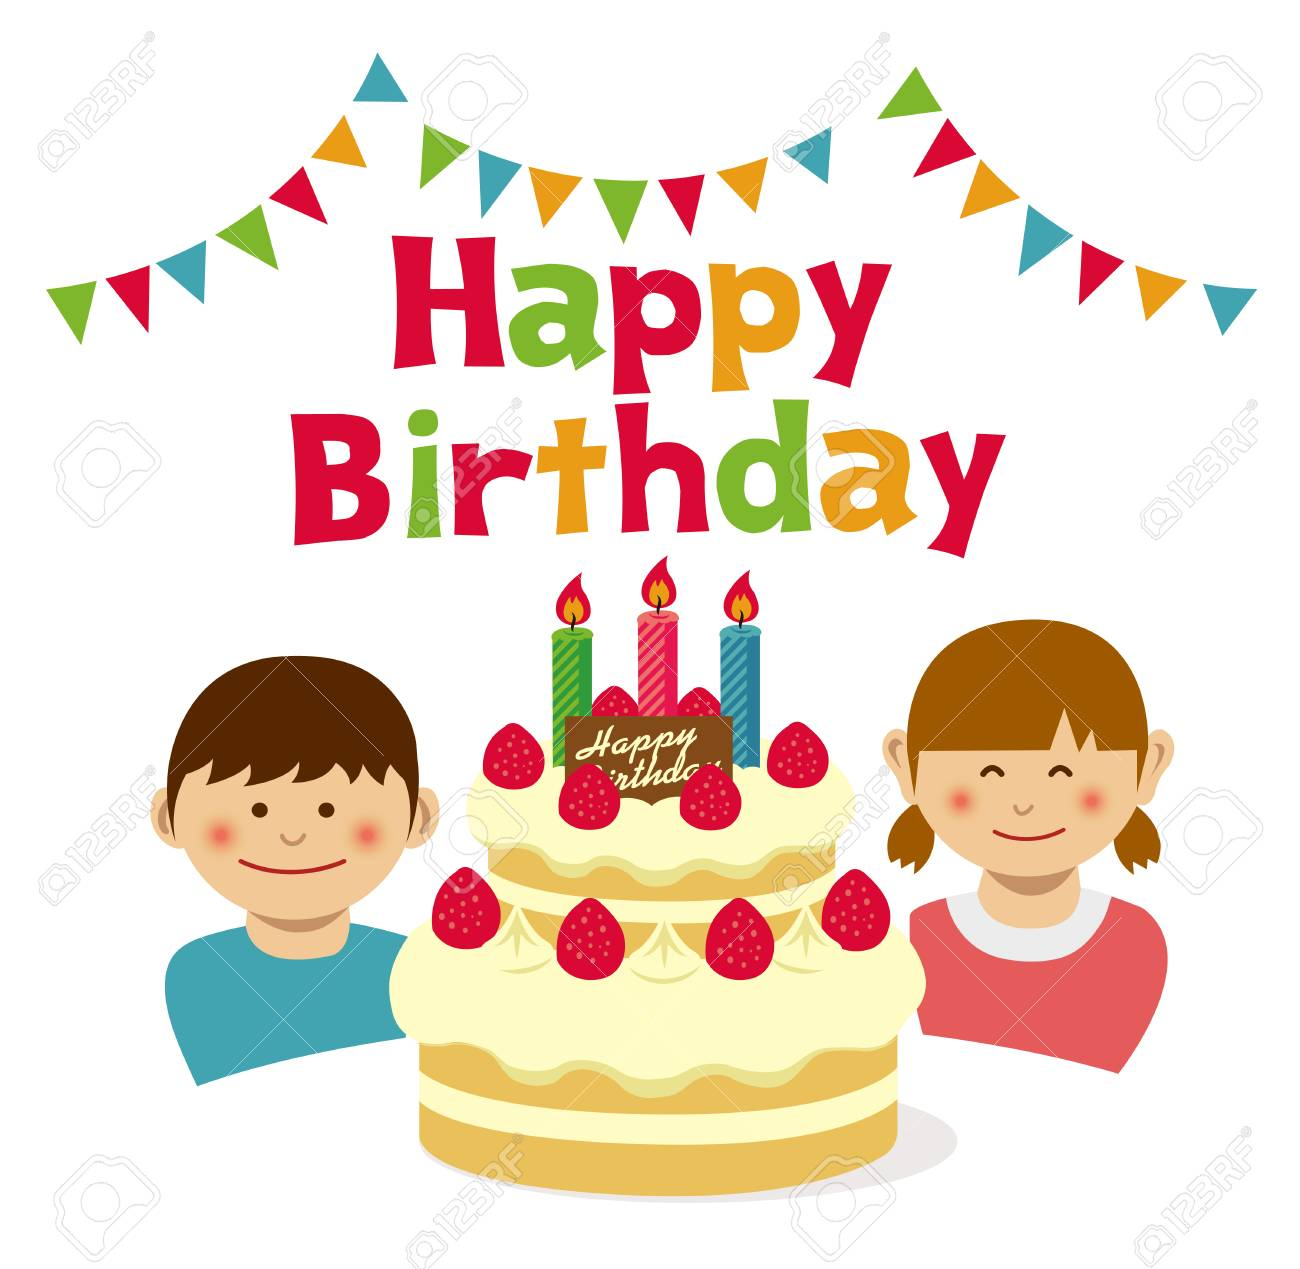 Happy Birthday Cake And Kids Illustration Stock Vector